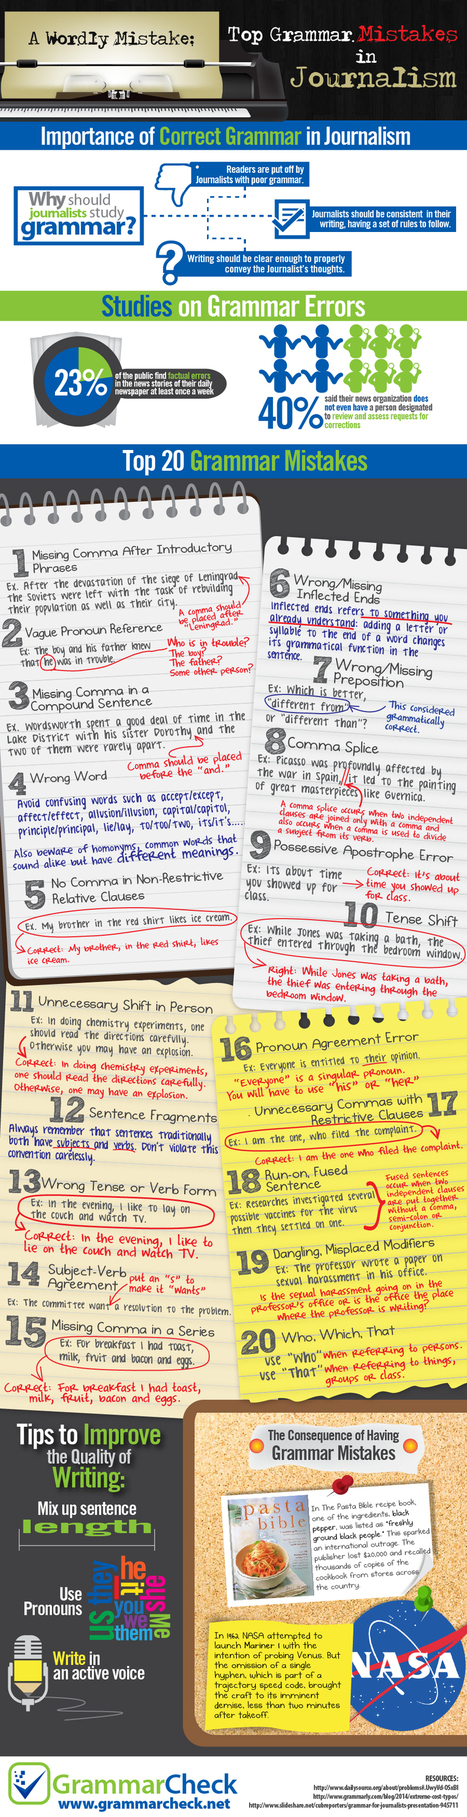 A Wordly Mistake: Top 20 Grammar Mistakes in Journalism (Infographic) | iPhoneography attempts and journalism | Scoop.it